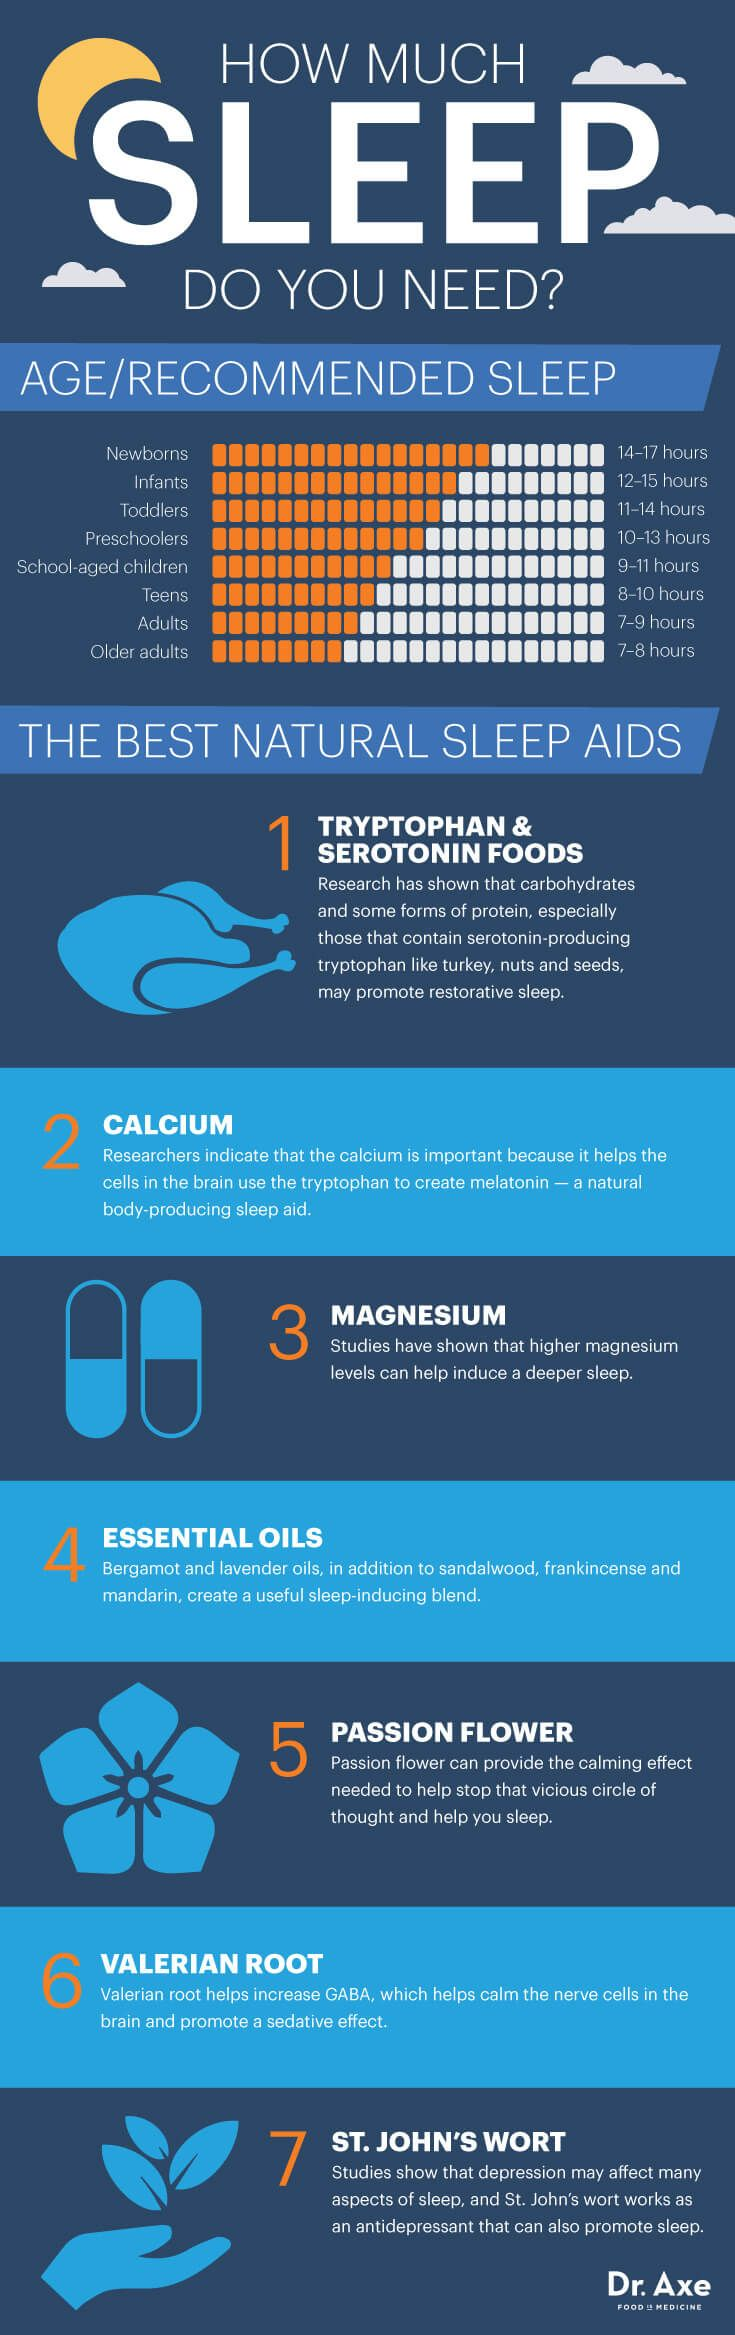 Top seven natural sleep aids - Dr. Axe